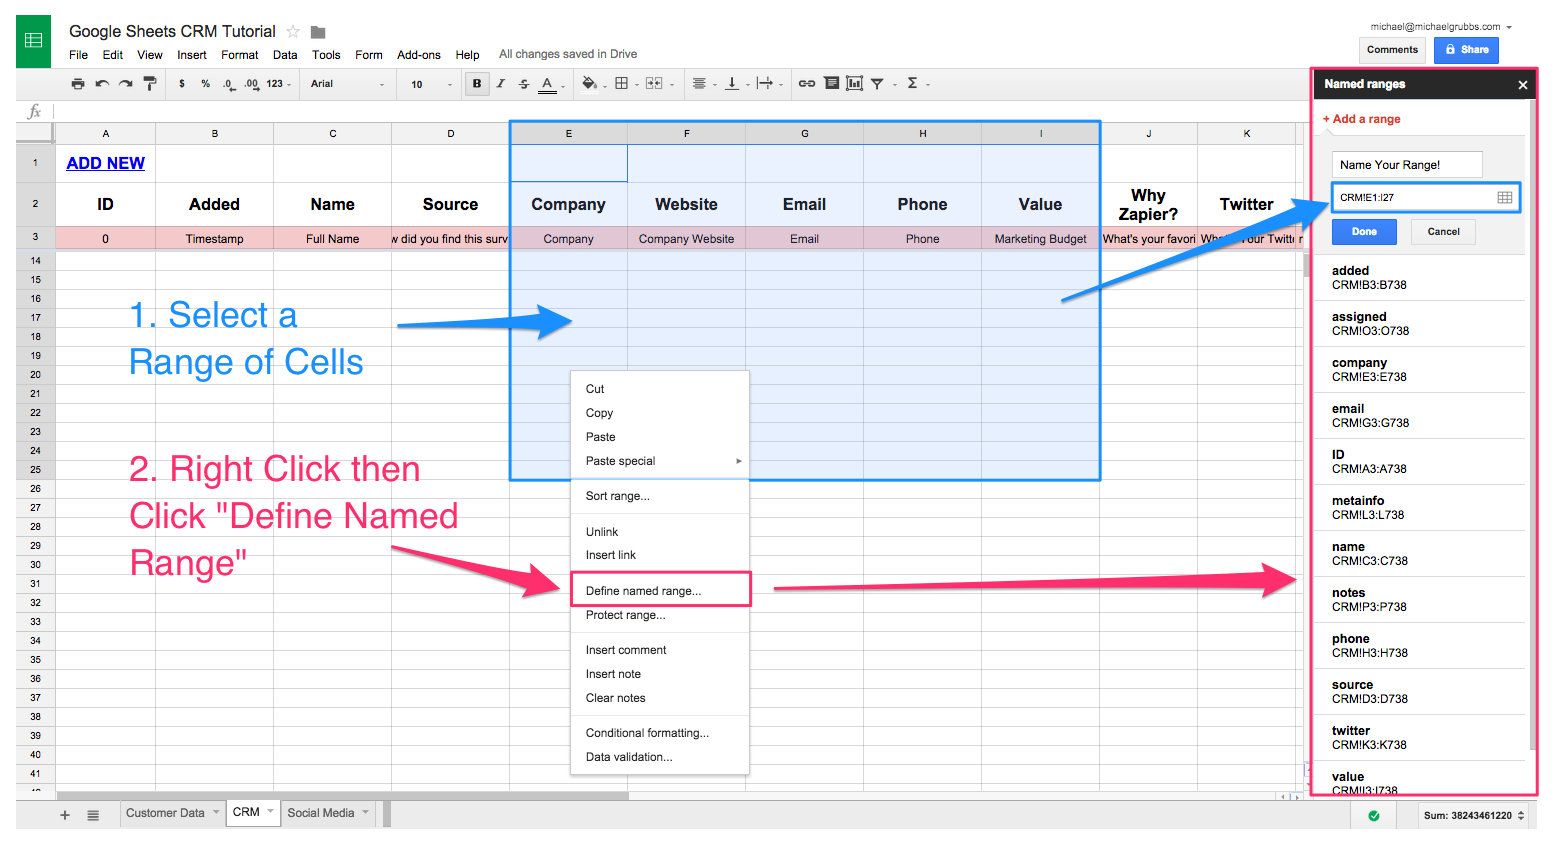 Inventory Spreadsheet Template Google Sheets Intended For Spreadsheet Crm: How To Create A Customizable Crm With Google Sheets